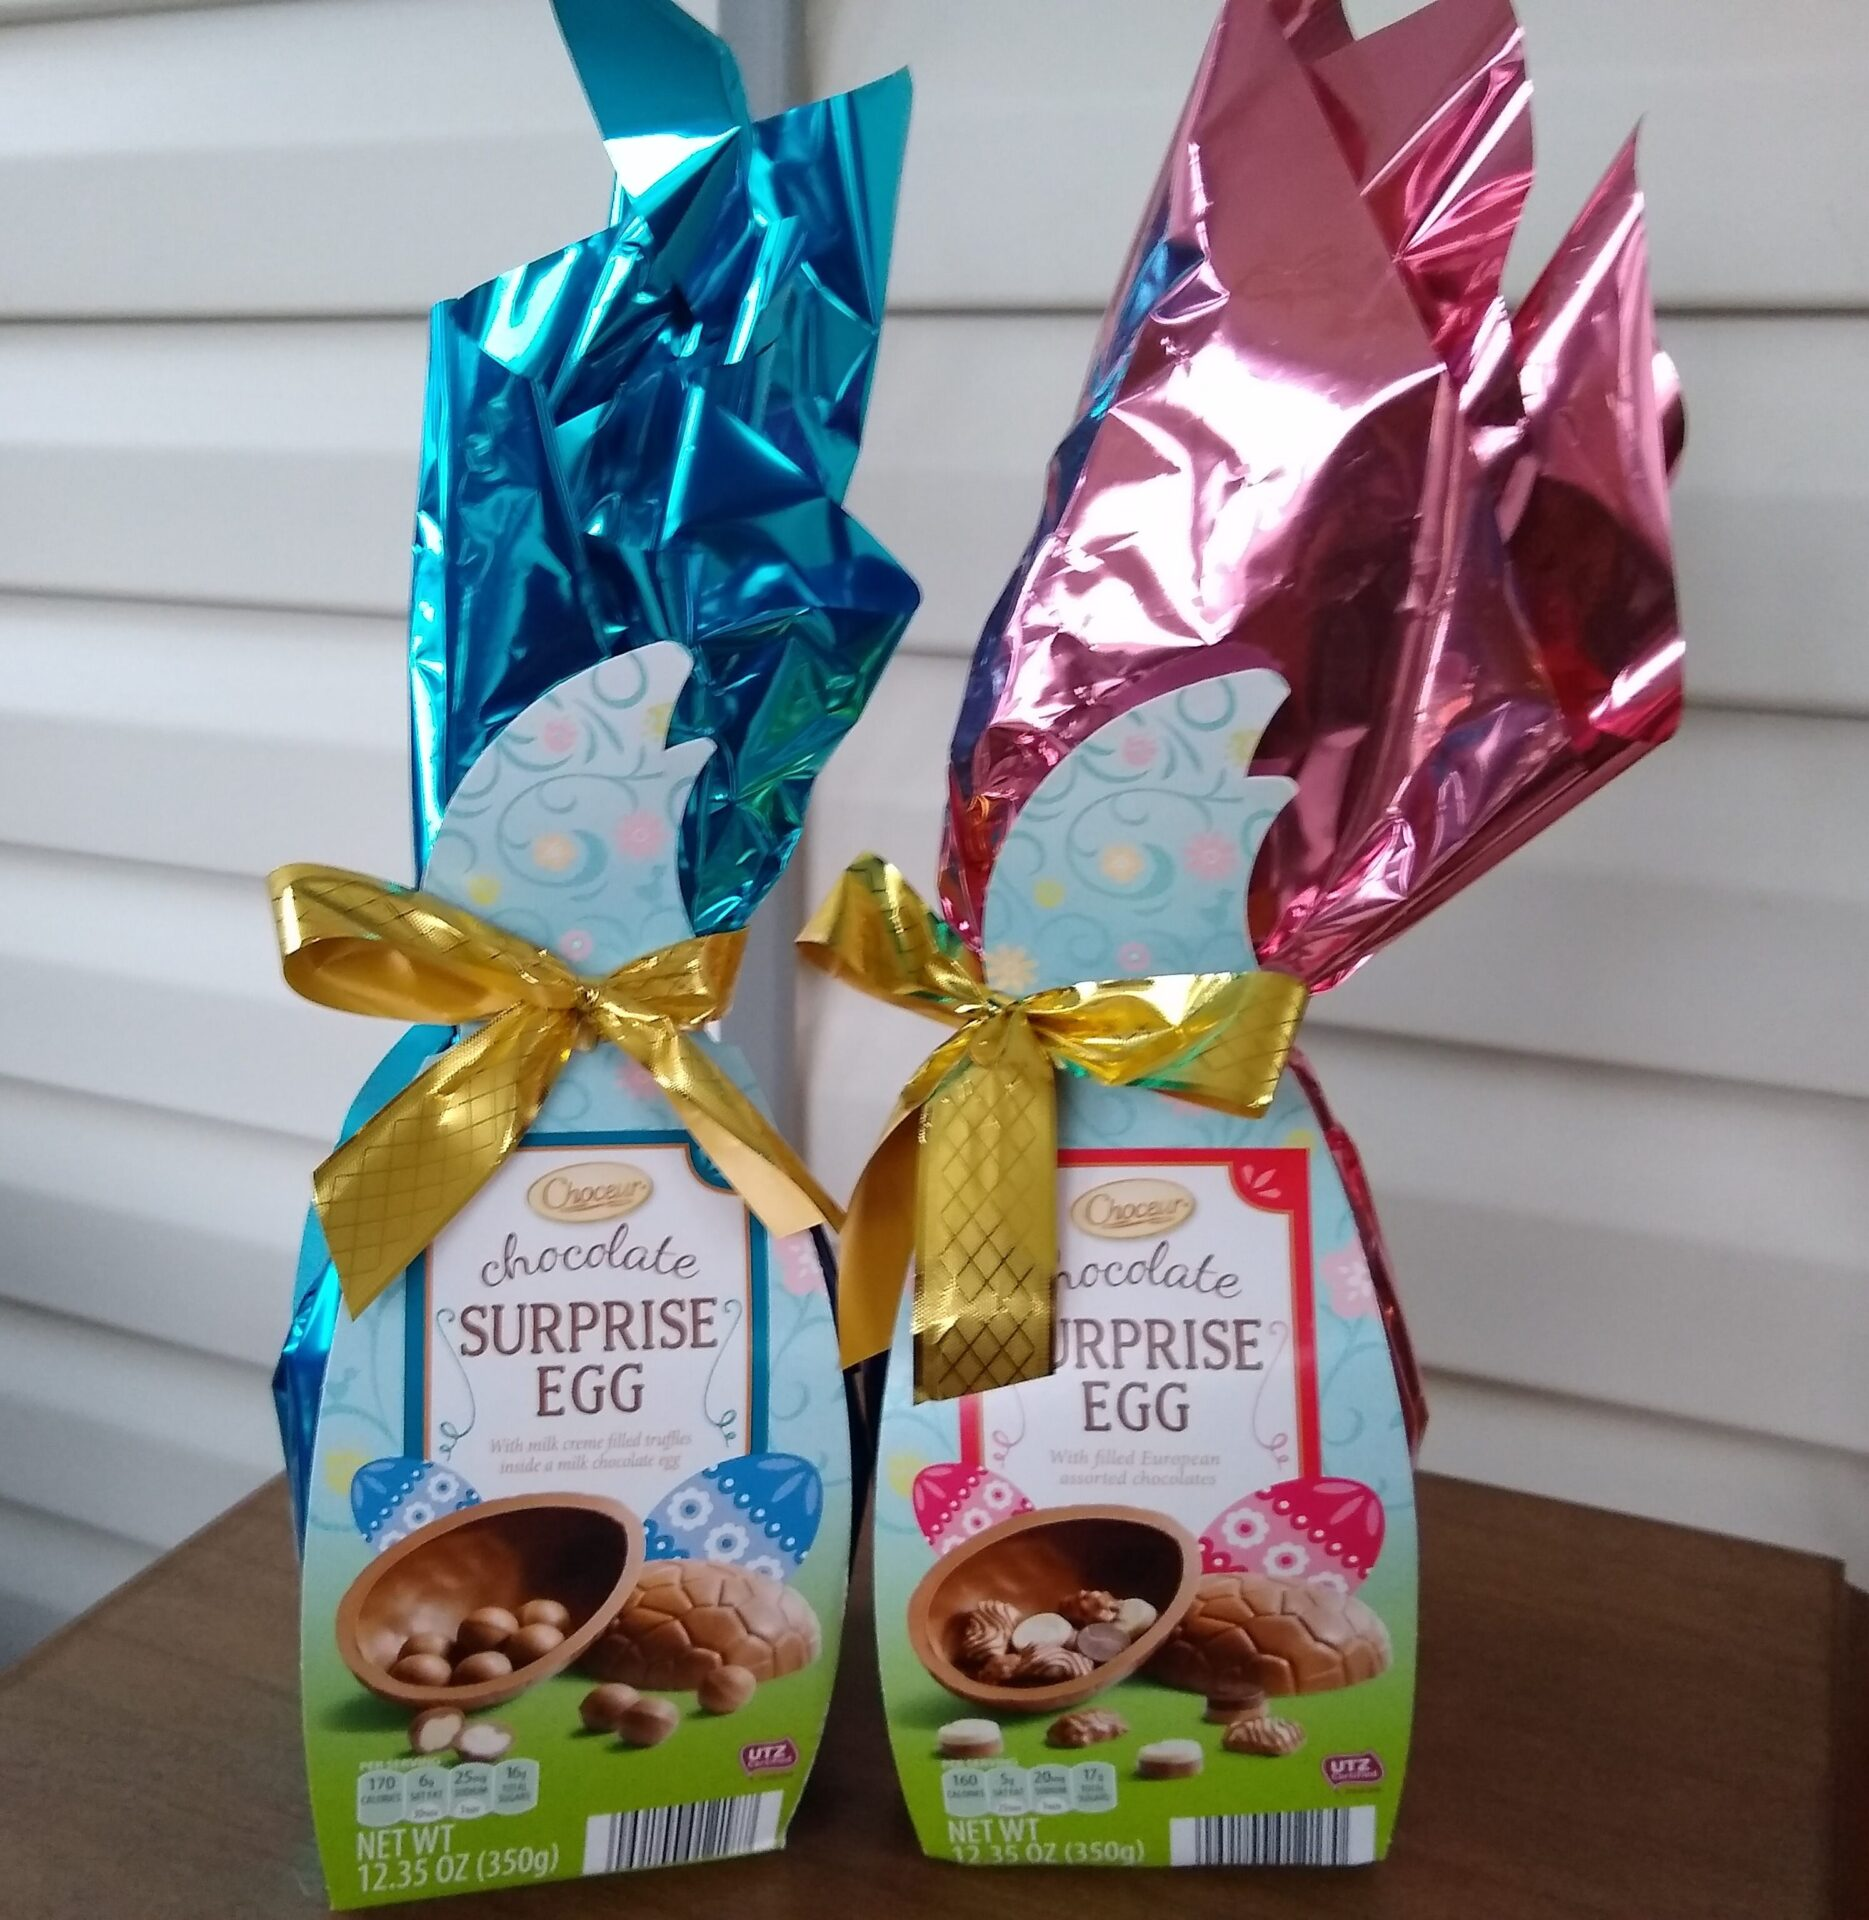 Choceur Chocolate Surprise Egg